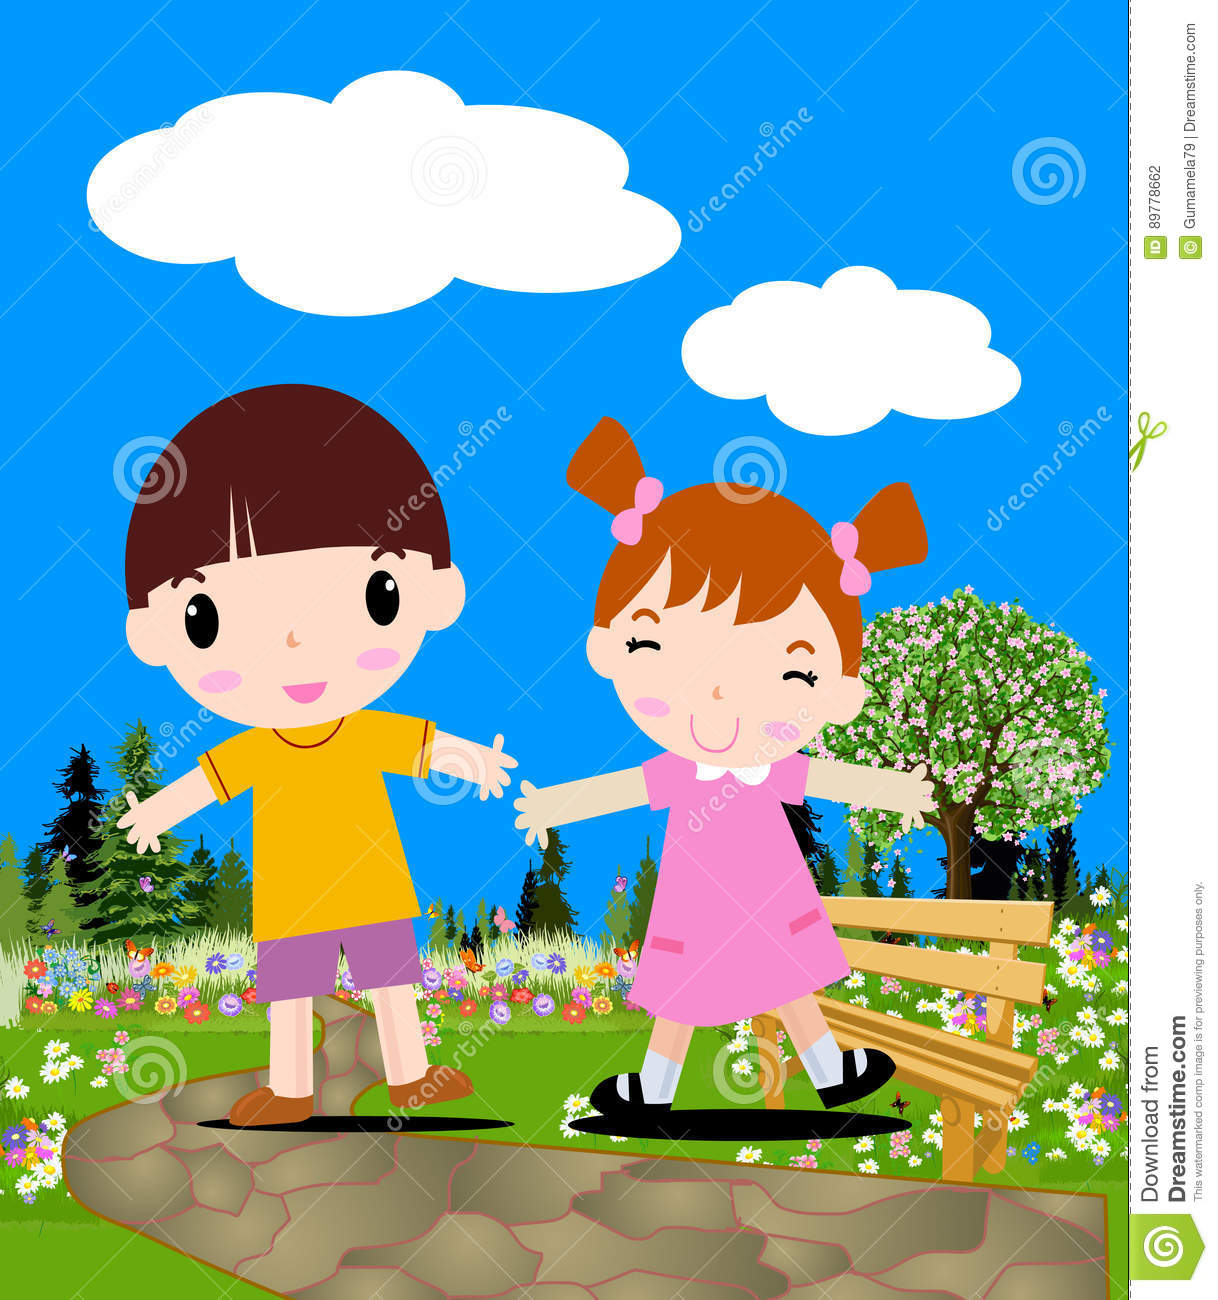 Colored of a boy and girl stock illustration. Illustration of cute ...